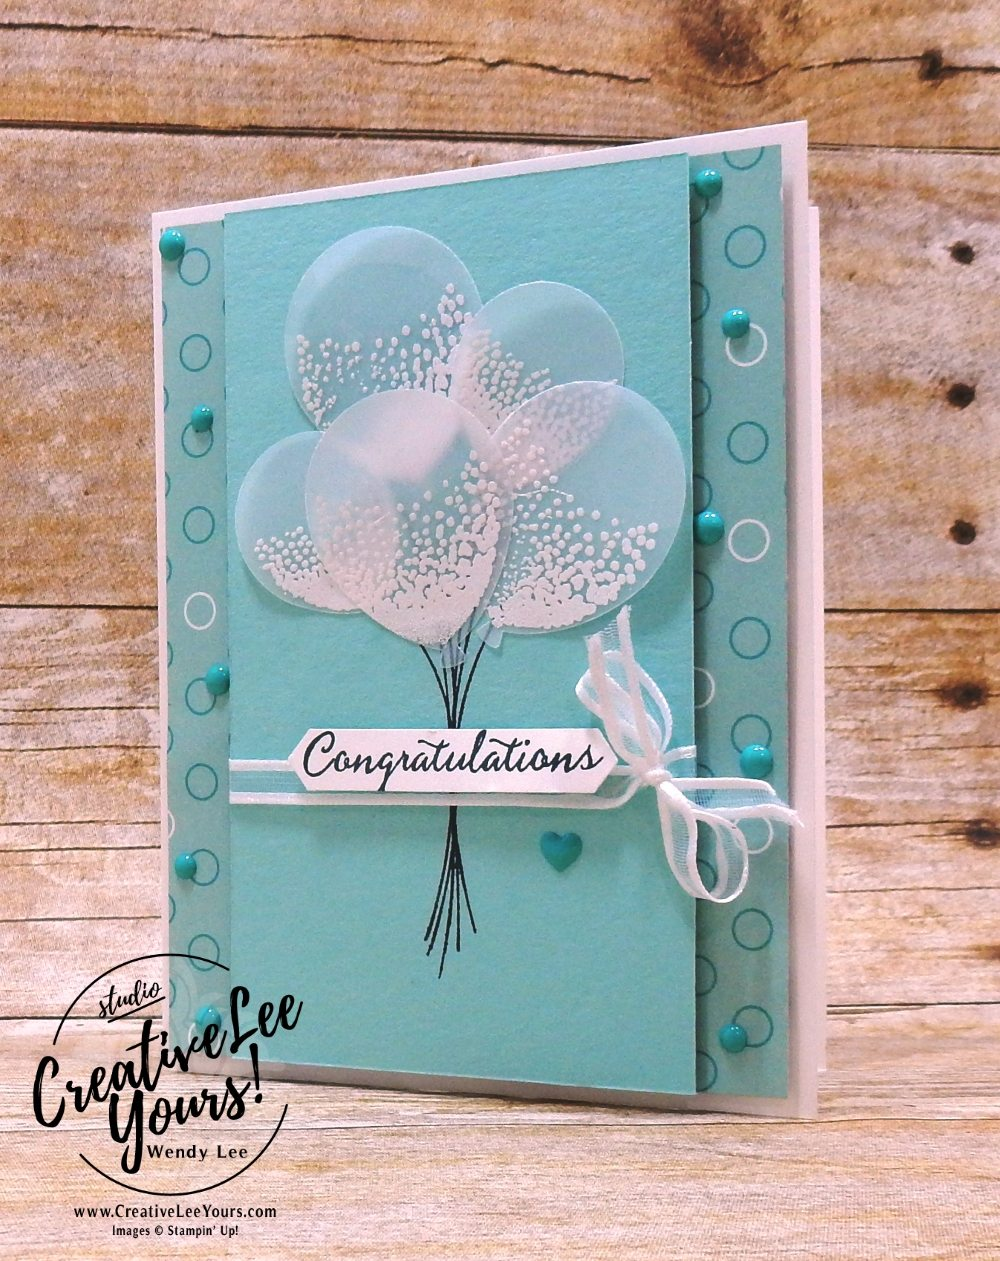 Congratulations by wendy lee, stampin up, handmade, stamping, #creativeleeyours, creatively yours, creative-lee yours, Kylie Bertucci, international highlights, blog hop, balloon celebrations stamp set, baby cards,#makeacardsendacard